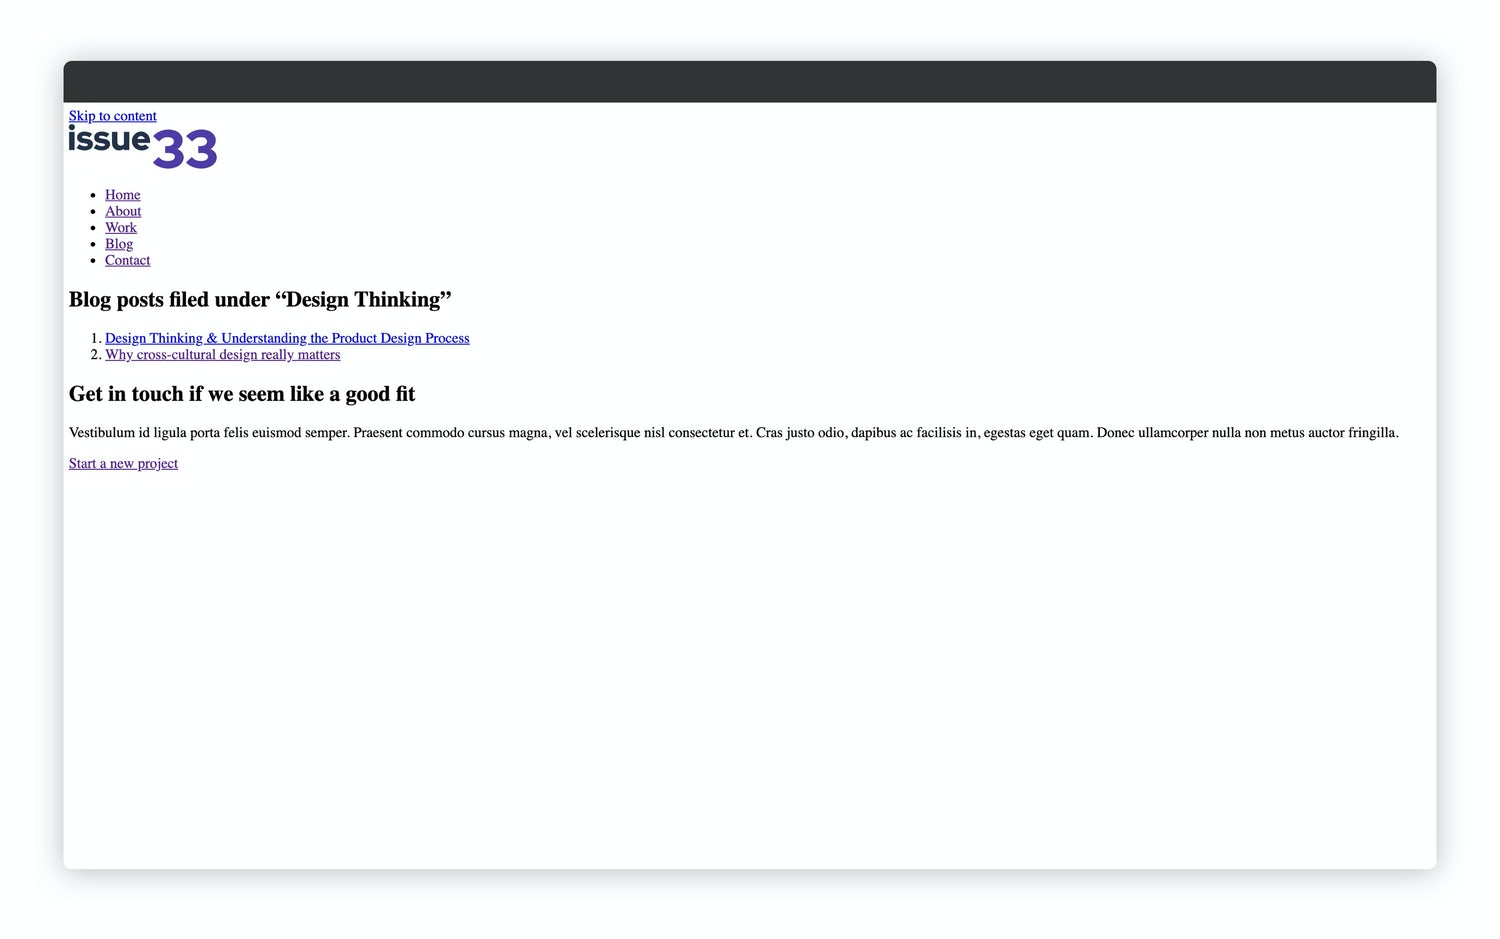 A similar looking view but it shows the design thinking tag's posts